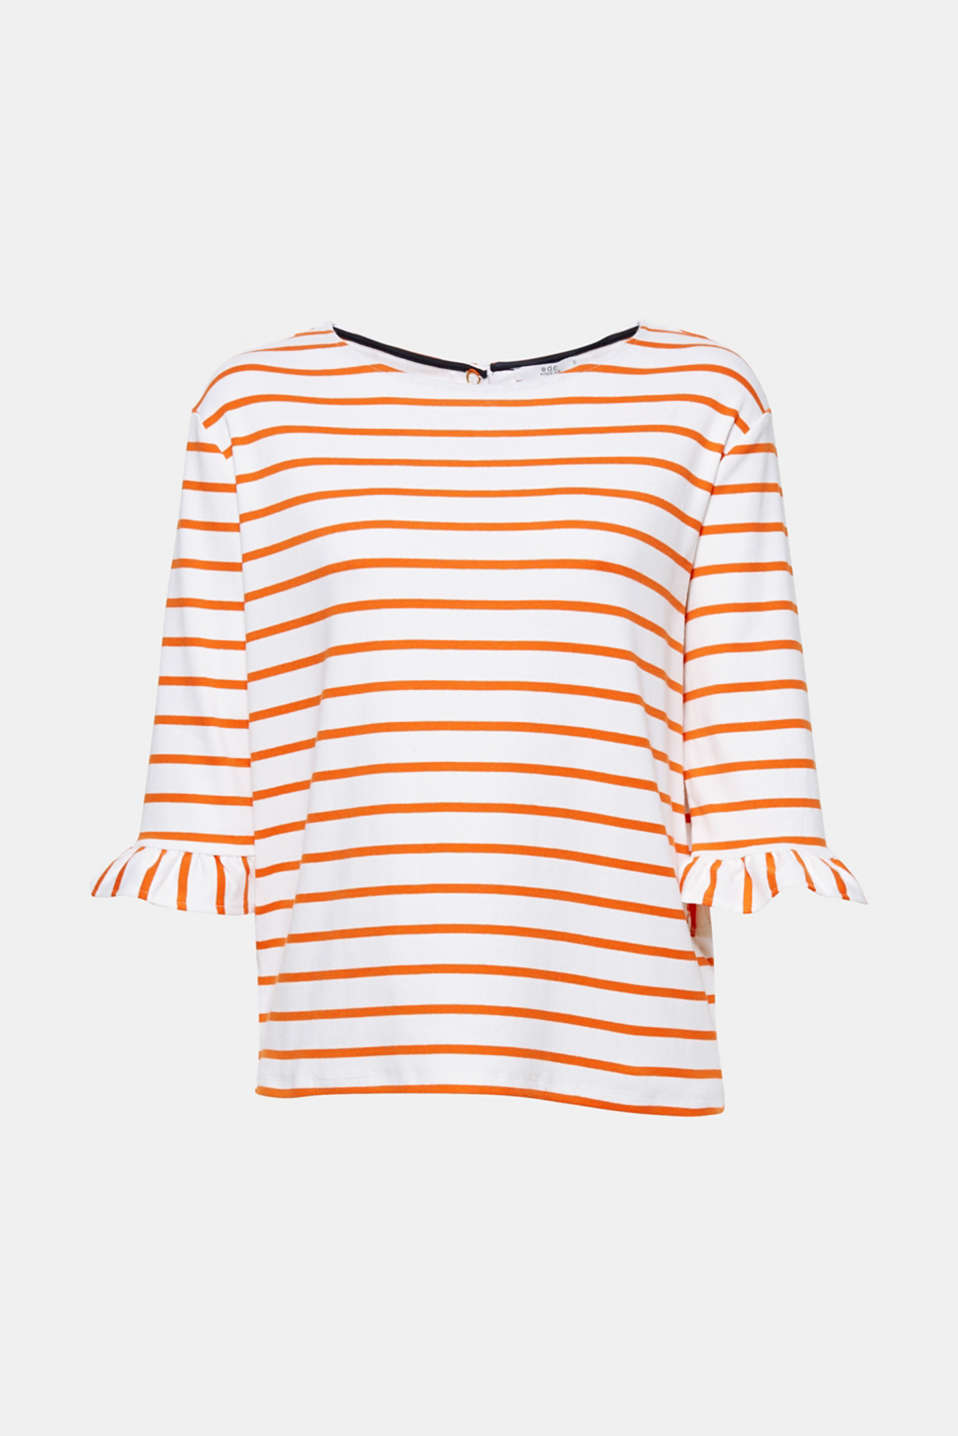 We love feminine styles! In this case with nautical stripes: stretch cotton top with flounces